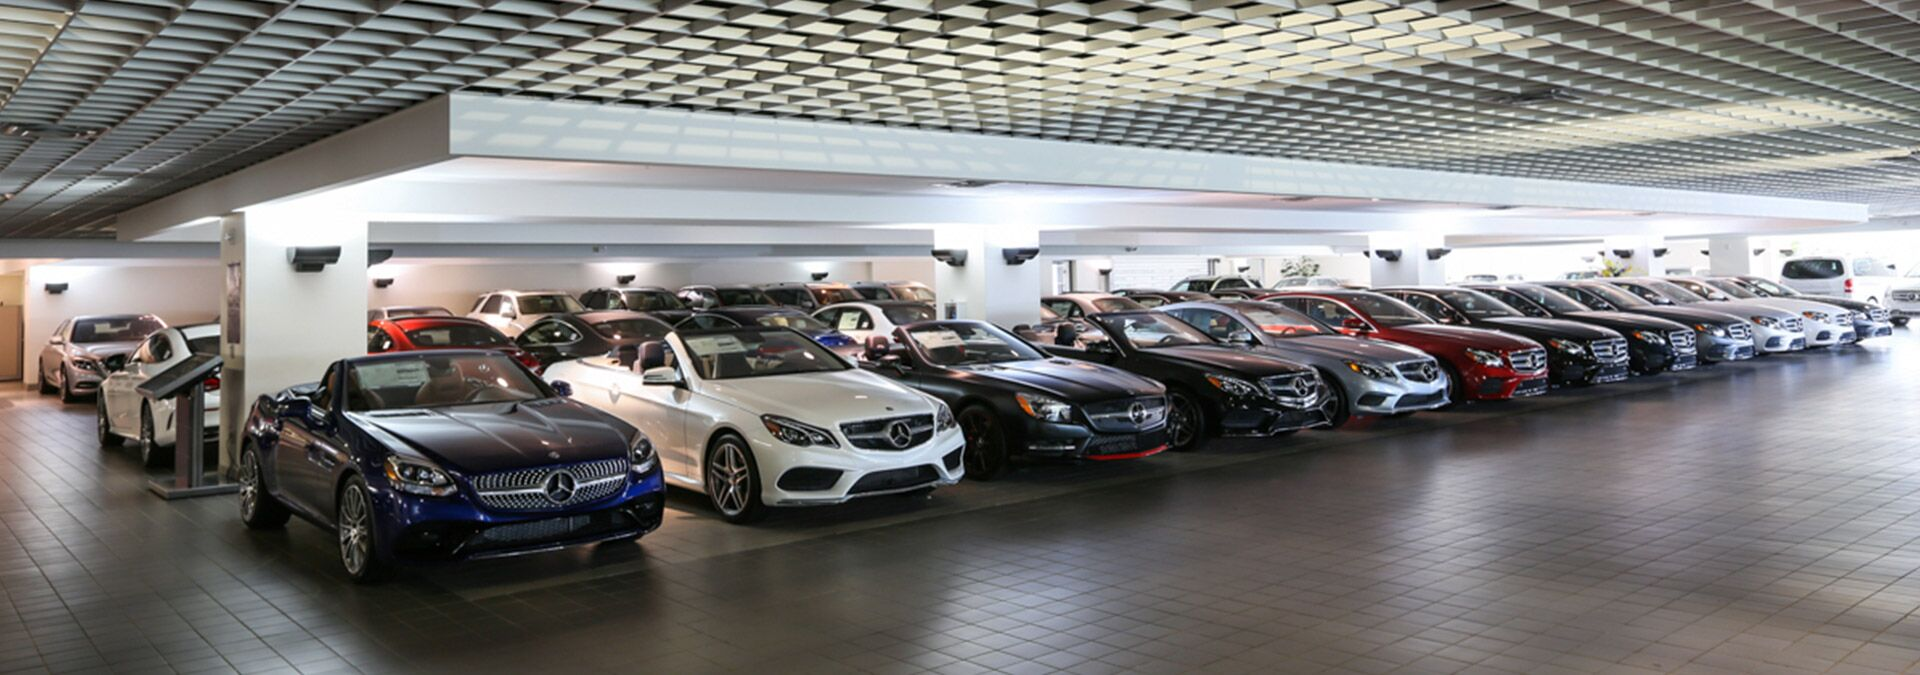 mercedes benz dealership miami fl used cars bill ussery